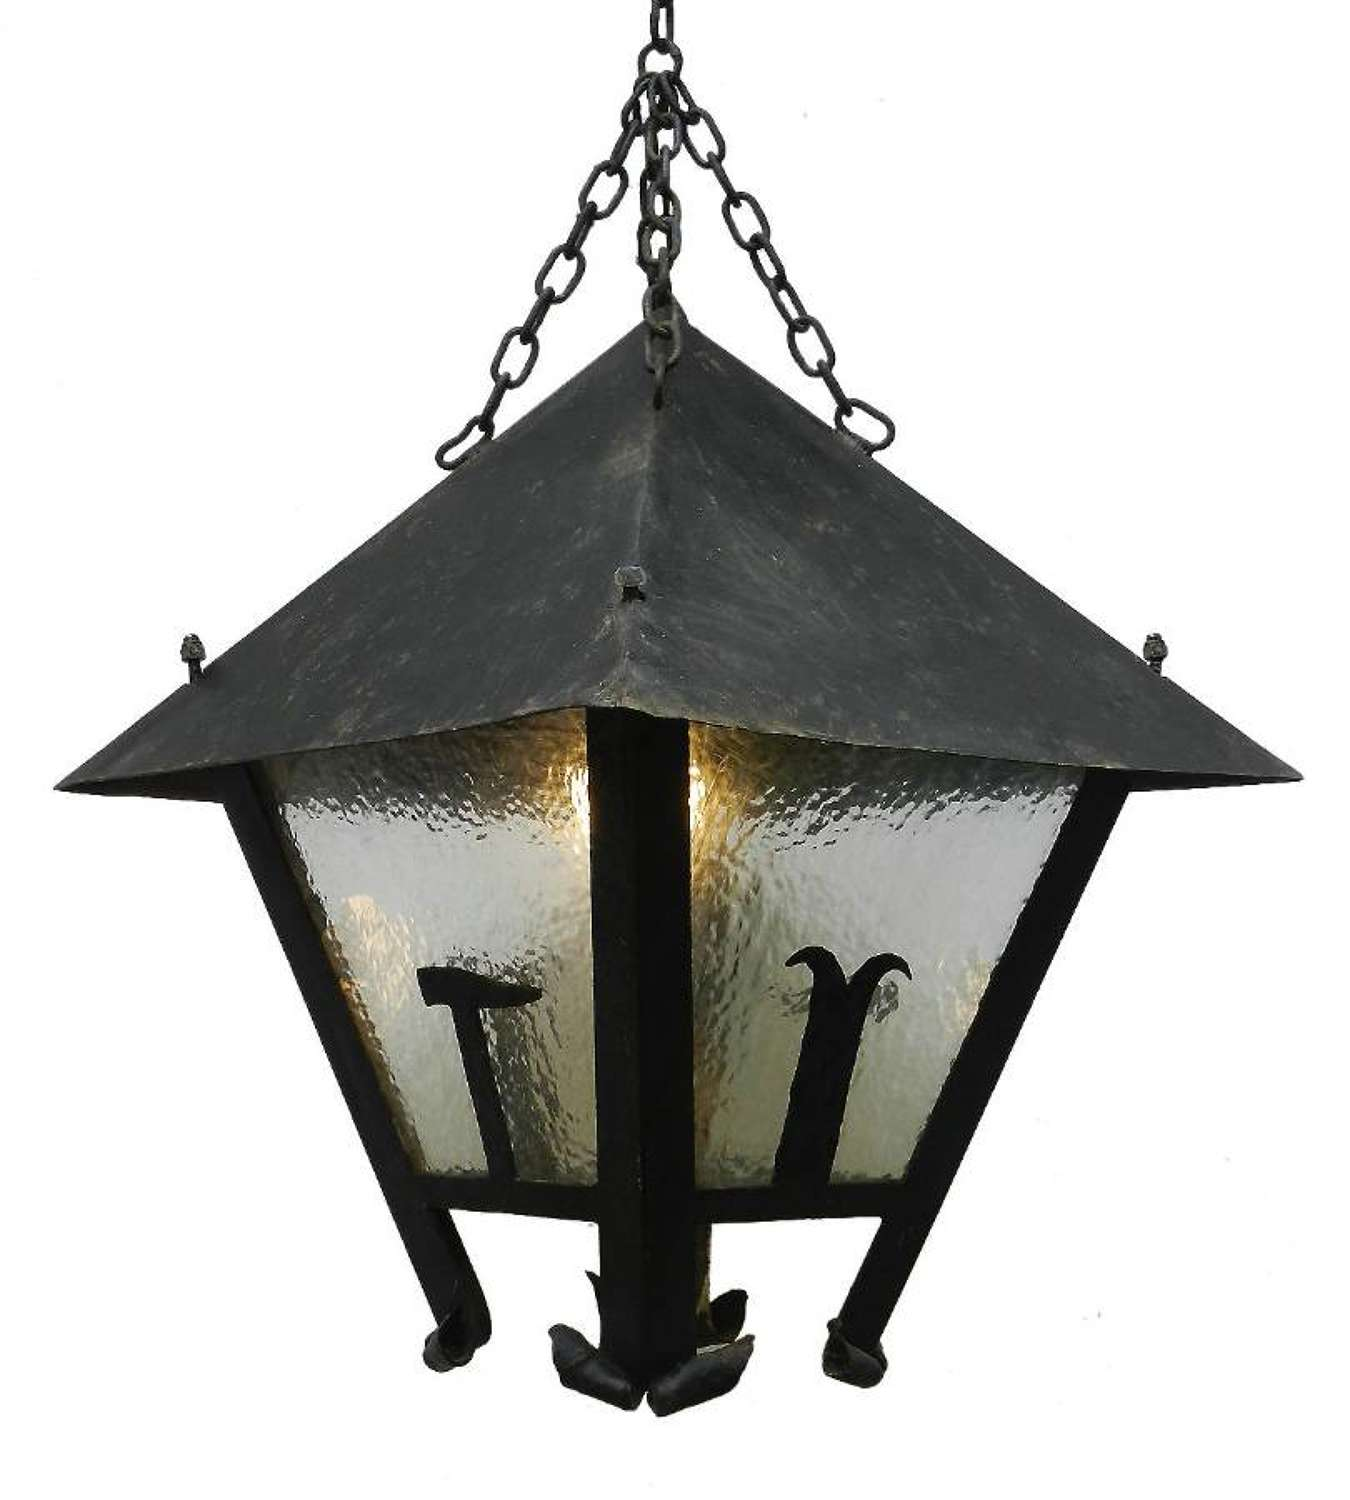 Large Lantern Outdoor Light French Arts and Crafts Iron Glass Exterior Porch